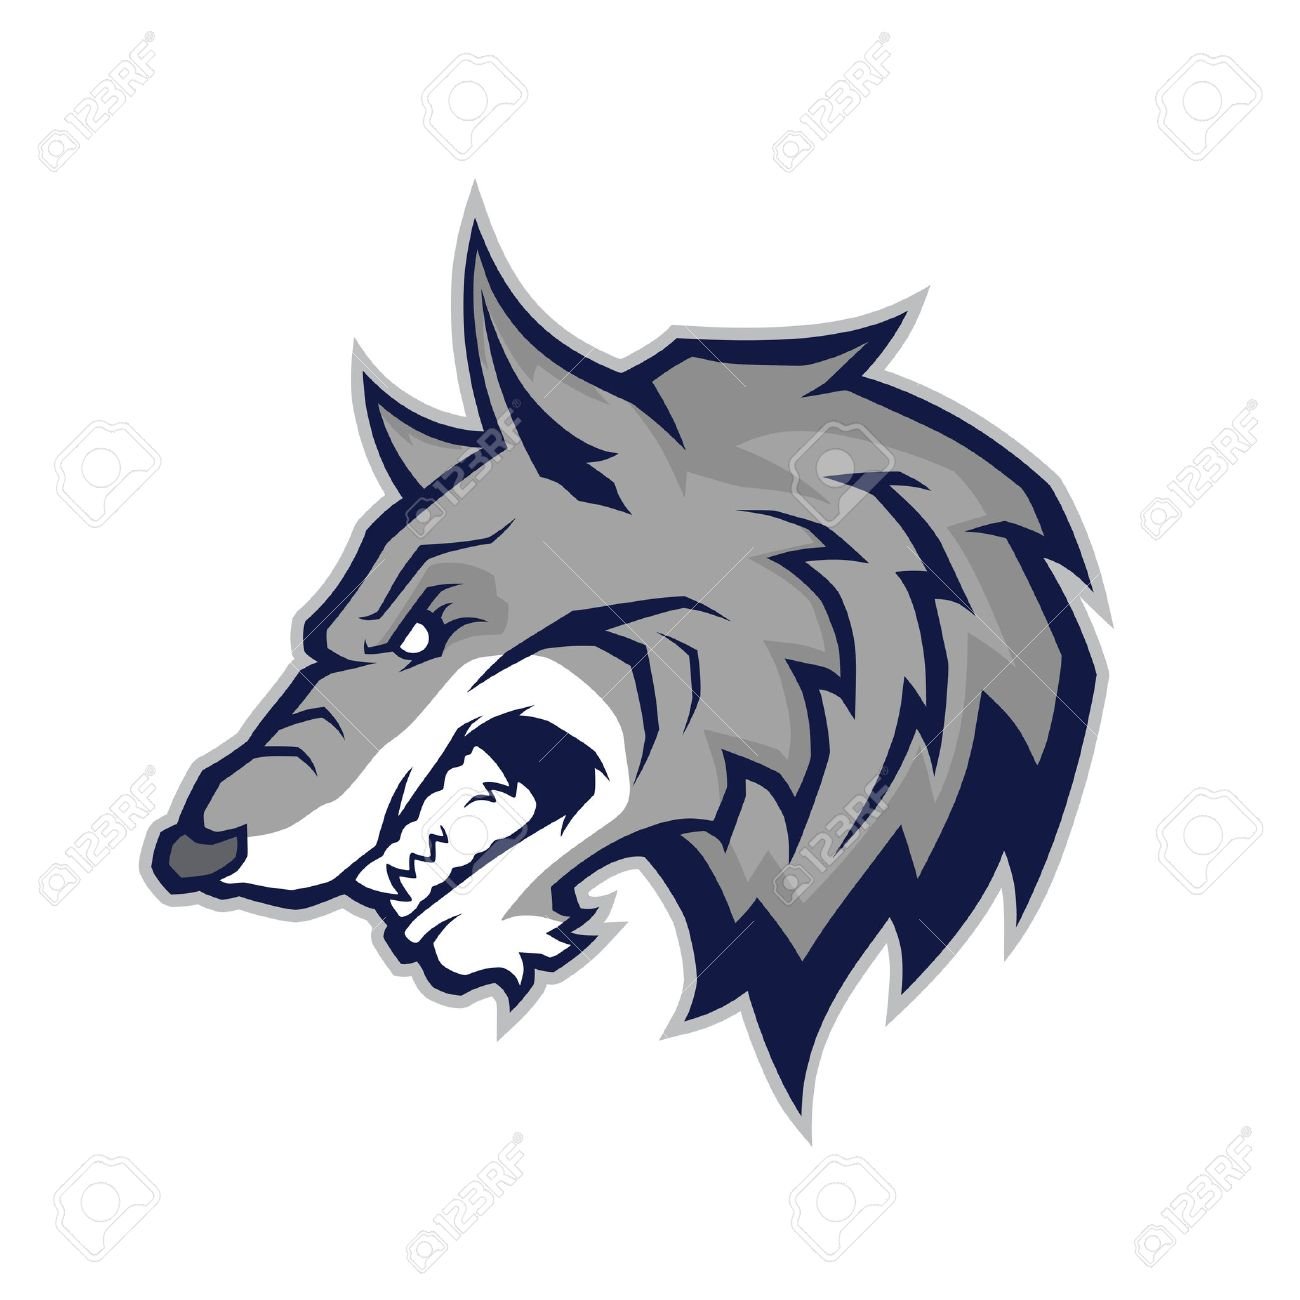 wolf head mascot royalty free cliparts vectors and stock rh 123rf com wolf head coloring pictures wolf head emblem